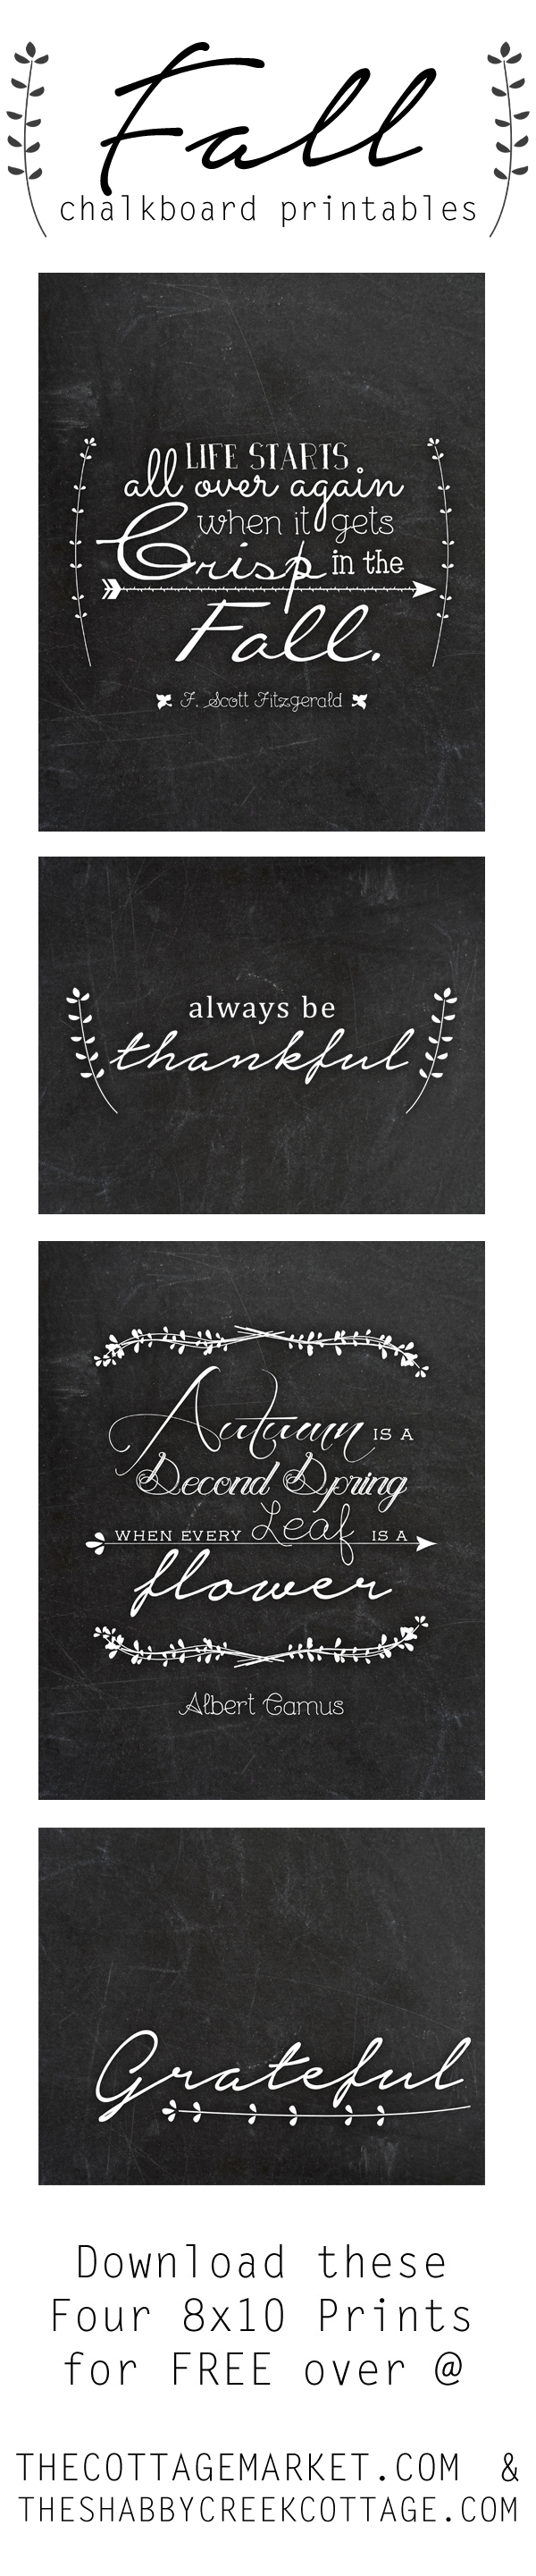 Fall Chalkboard Printables (free art!)